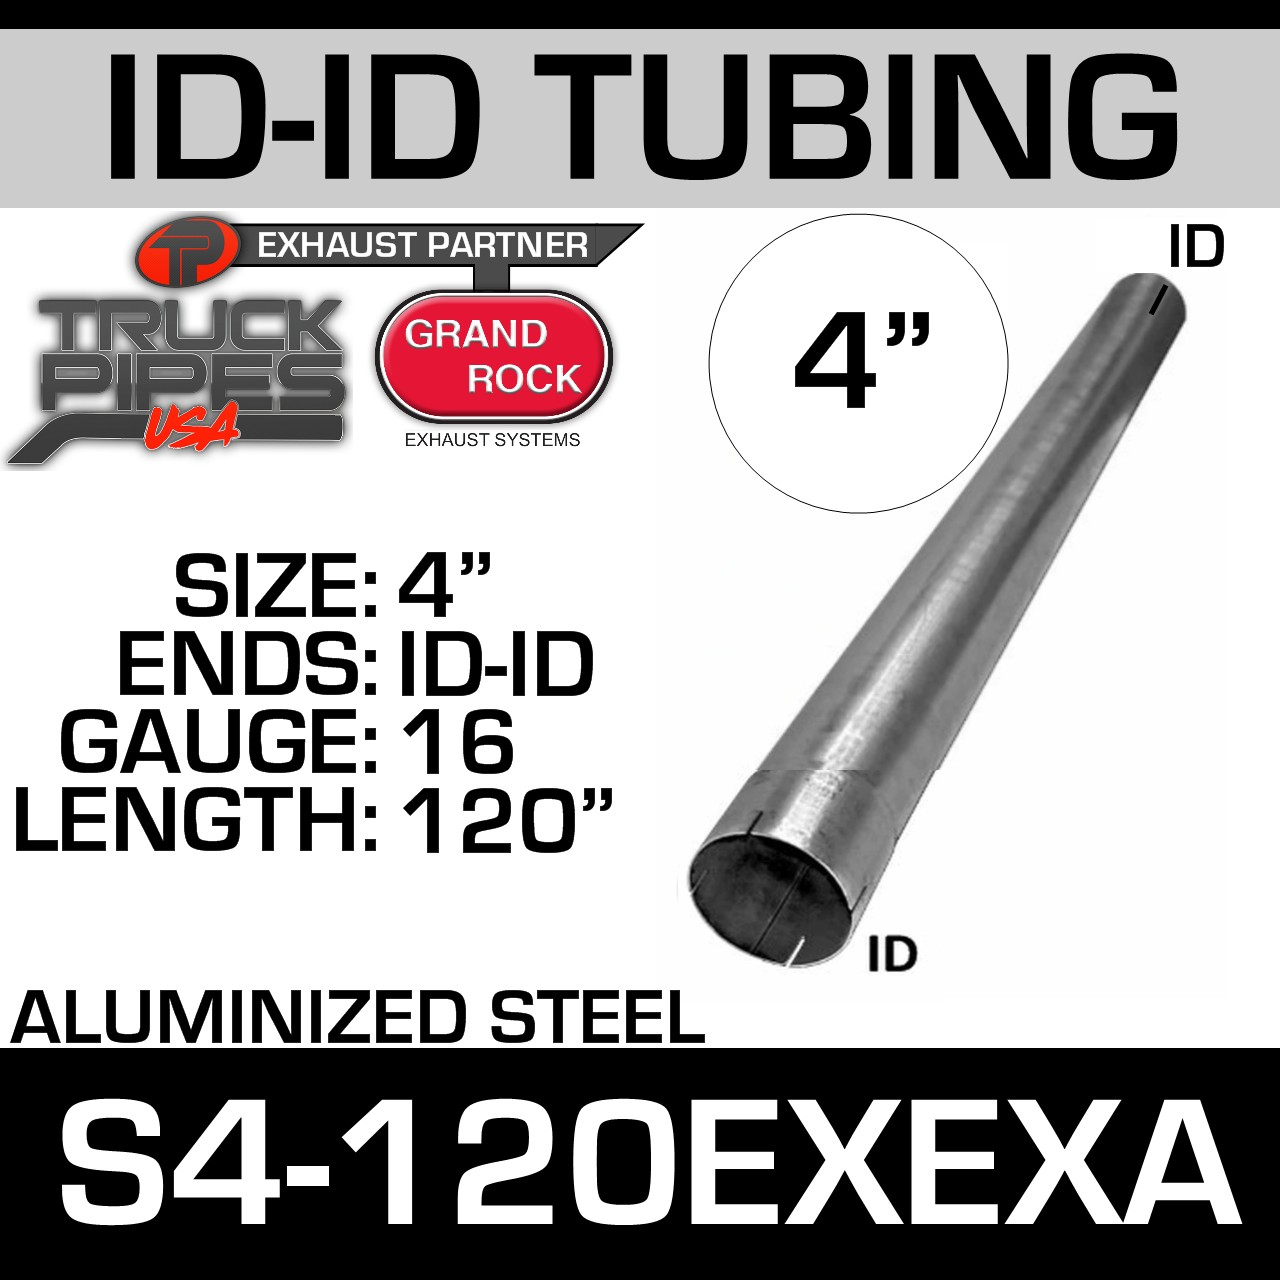 s4-120exexa-aluminized-steel-exhaust-tubing-4-inch-diameter-id-id-end-120-inches-long.jpg